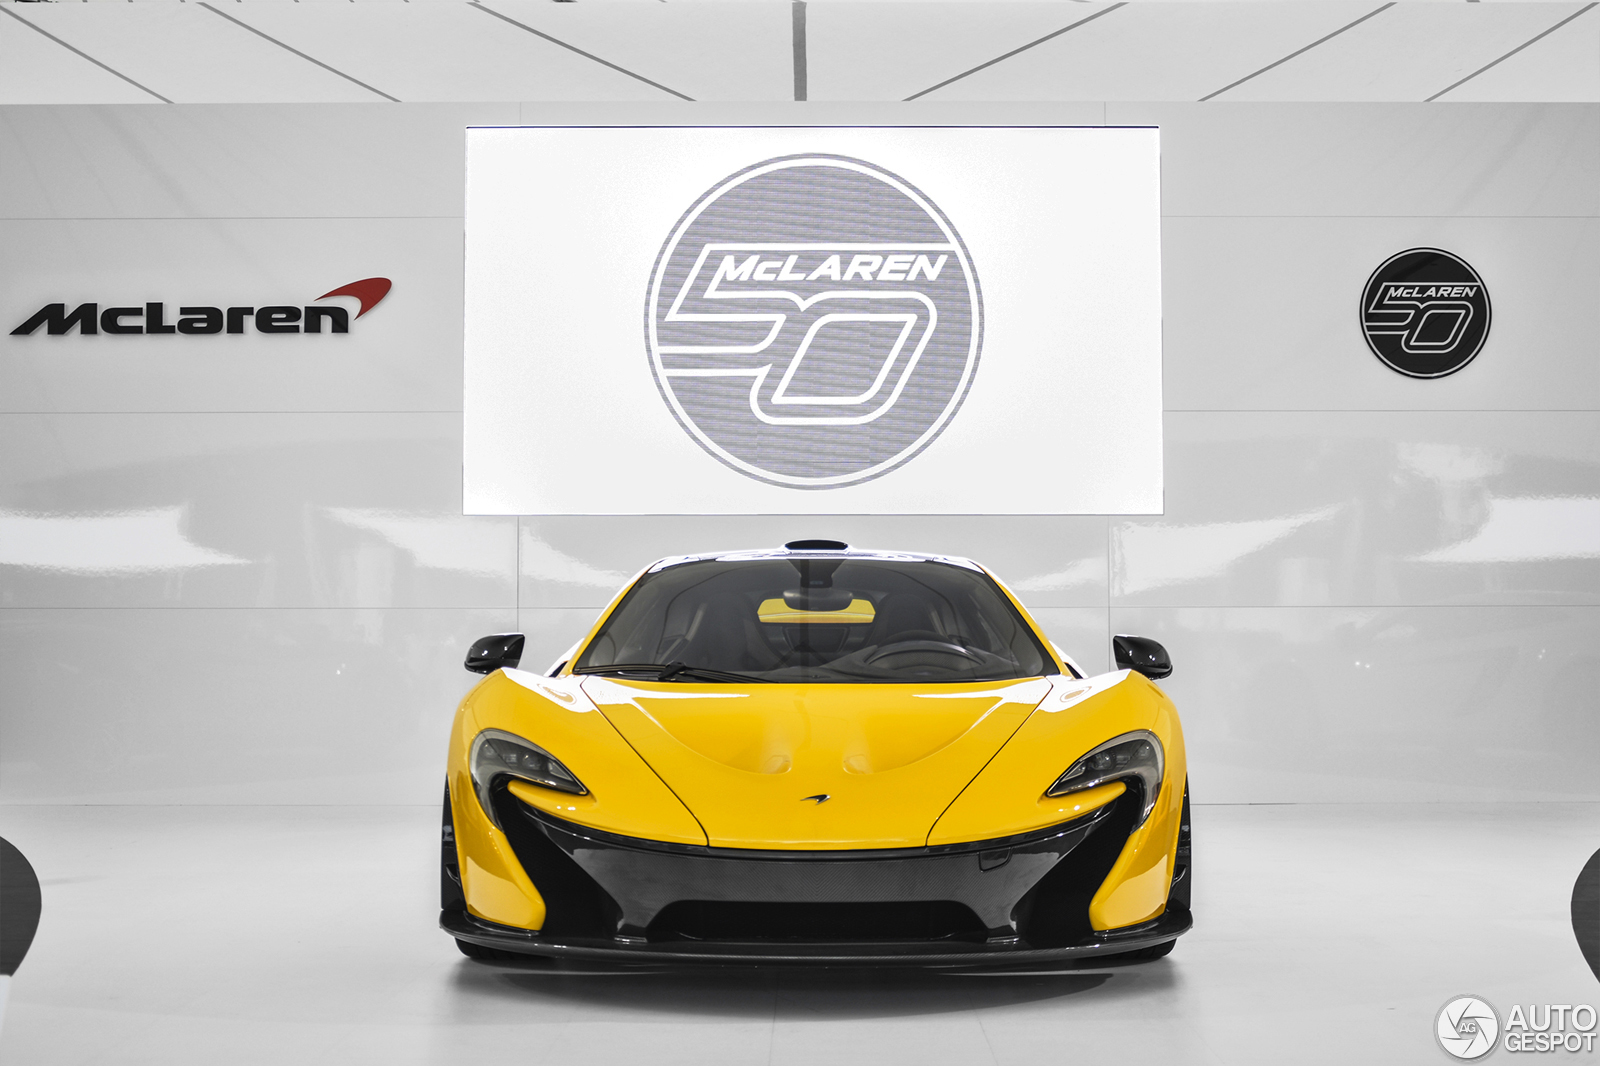 How Much Does A Mclaren P1 Cost >> McLaren P1 - Page 8 - F1technical.net